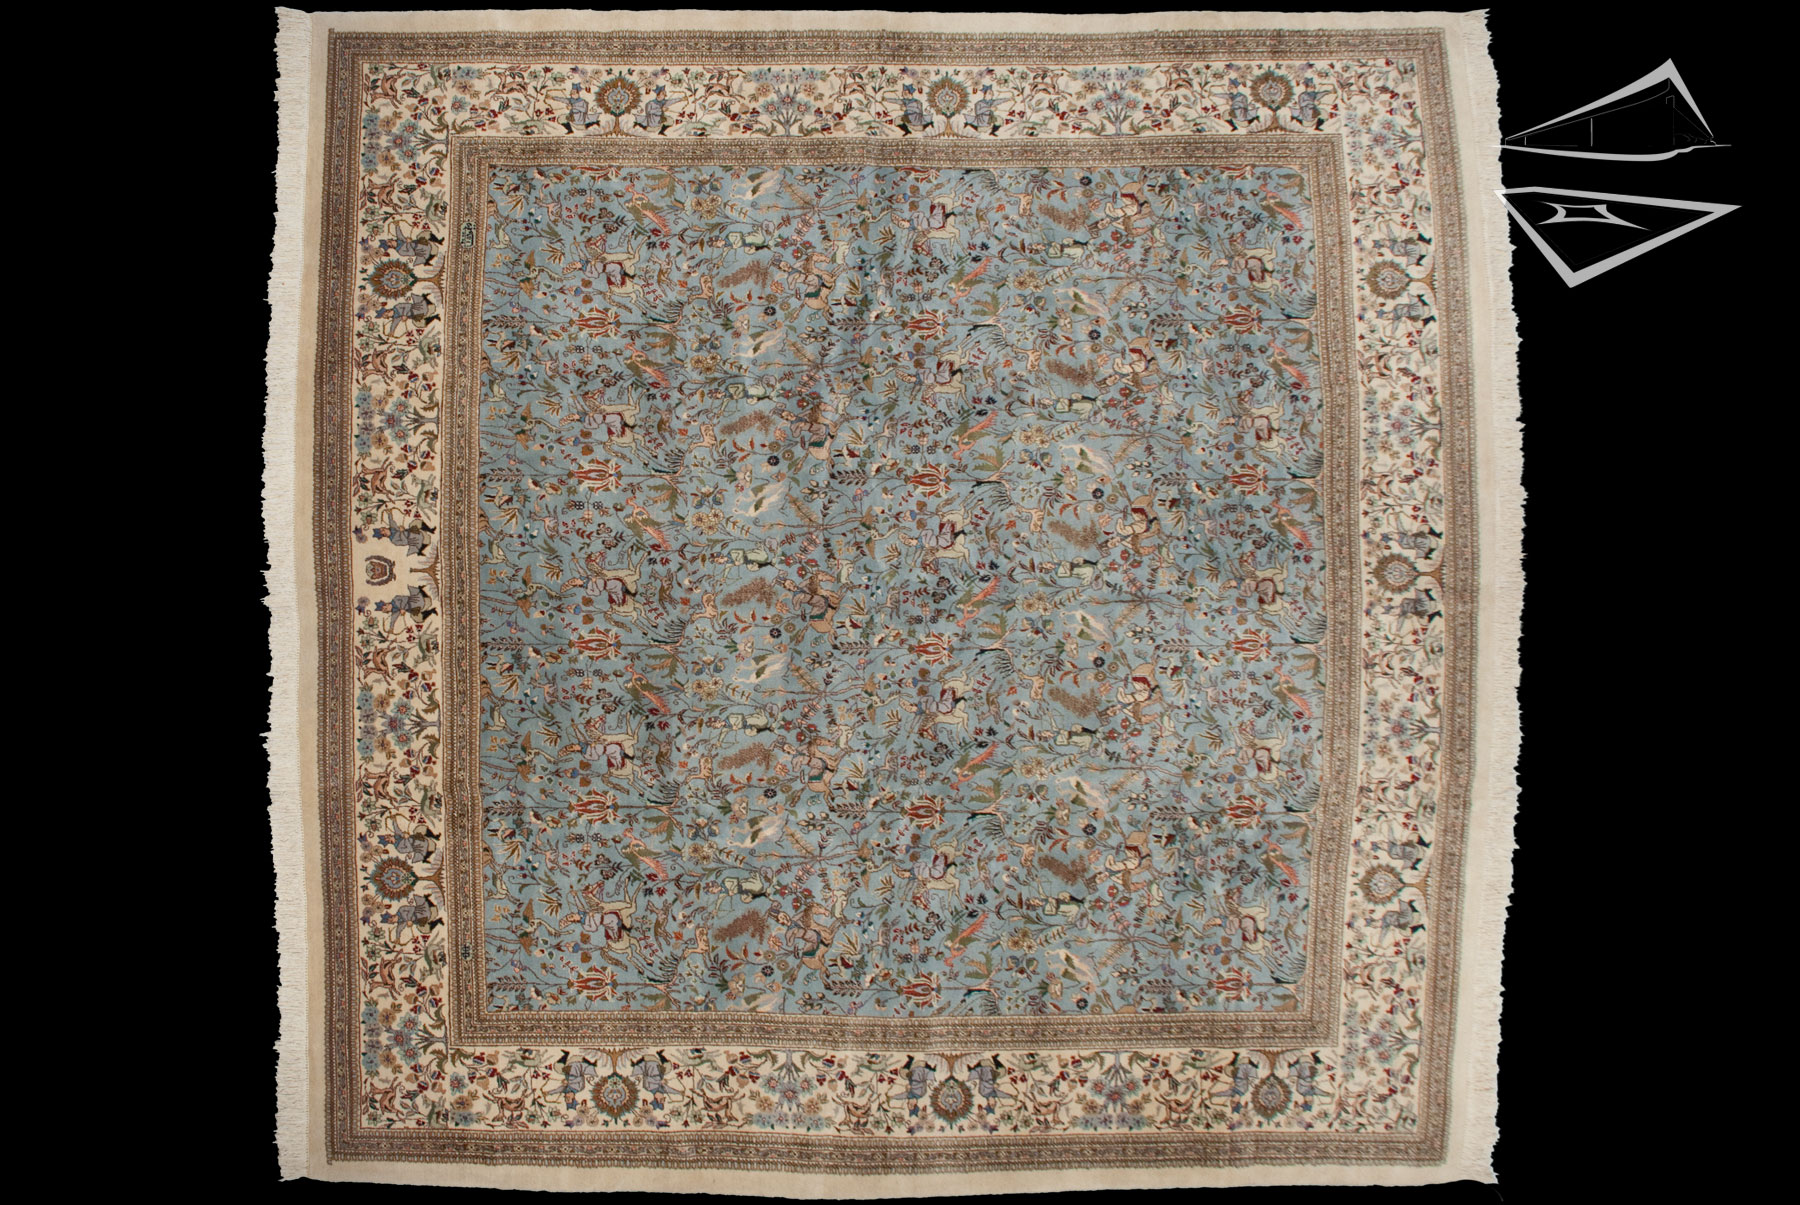 square persian cyrus crown tabriz rug 12 39 x 12 39. Black Bedroom Furniture Sets. Home Design Ideas